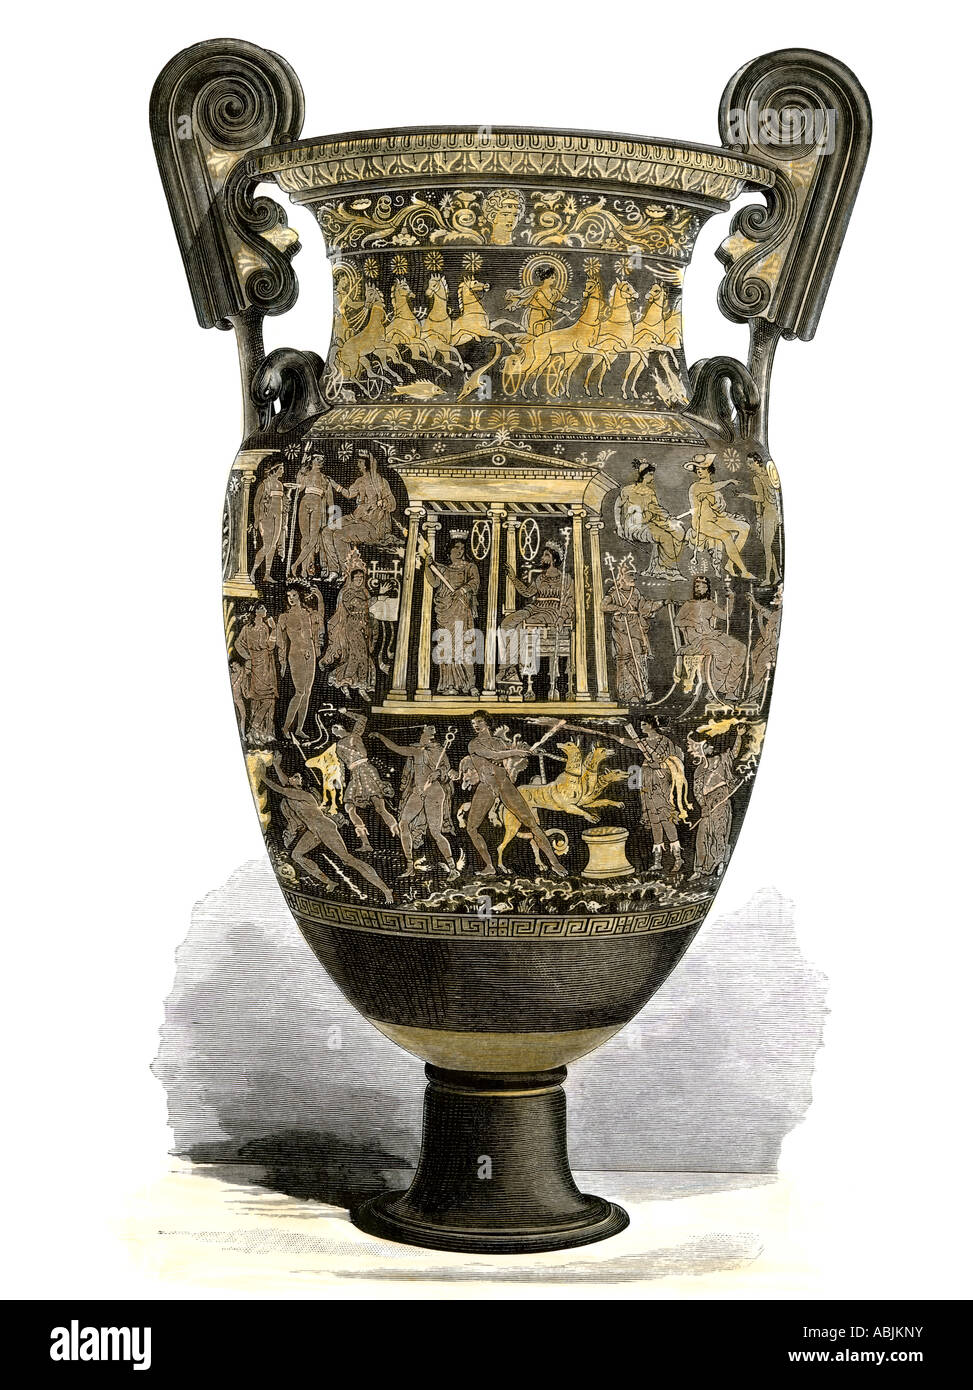 Richly decorated Greek urn. Hand-colored woodcut - Stock Image